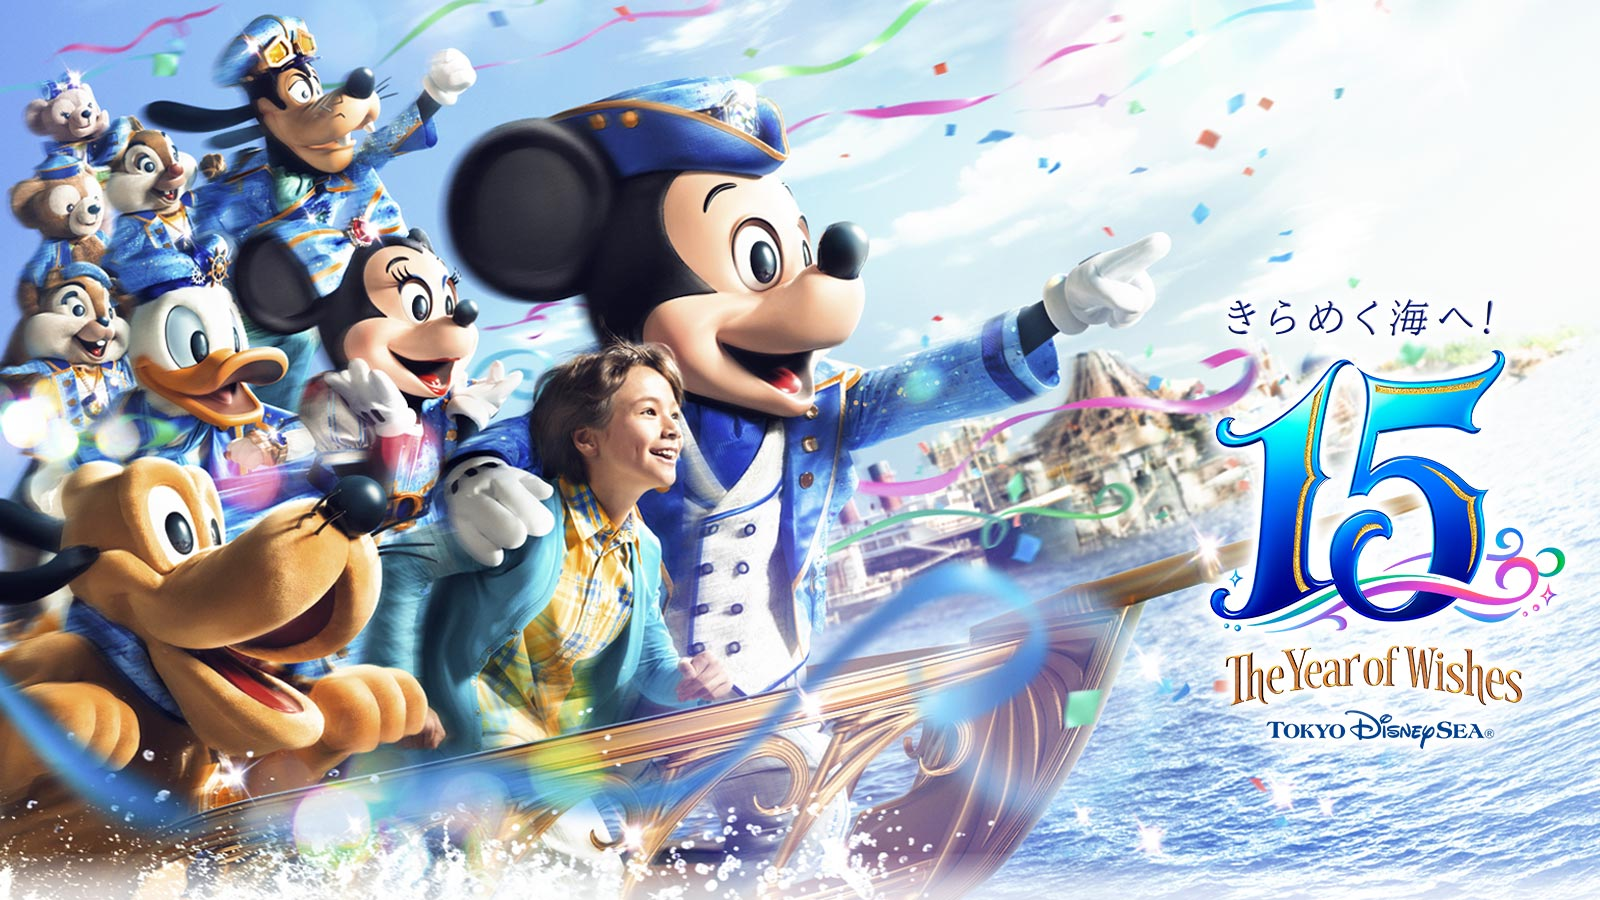 Power was temporarily knocked out at Tokyo DisneySea and Tokyo Disneyland on Tuesday